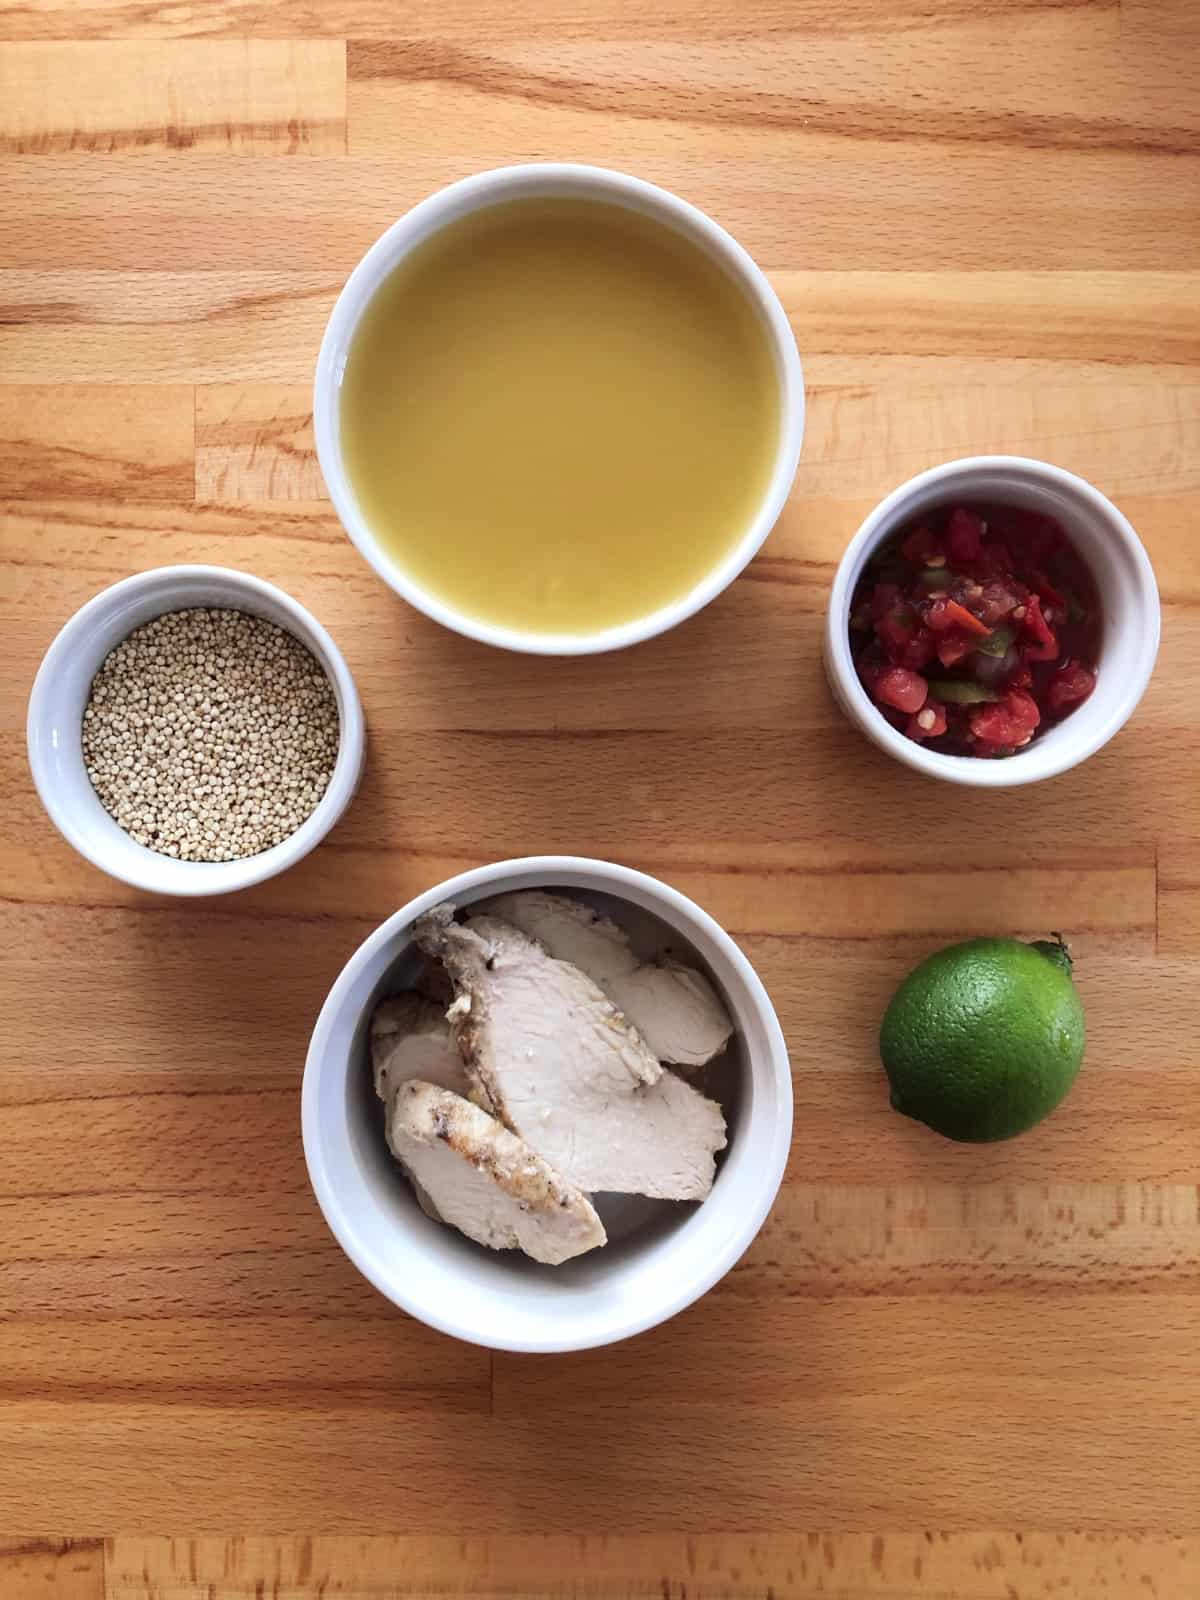 Uncooked quinoa, chicken broth, cooked chicken breast, pico de gallo and fresh lime for making a mug of soup.